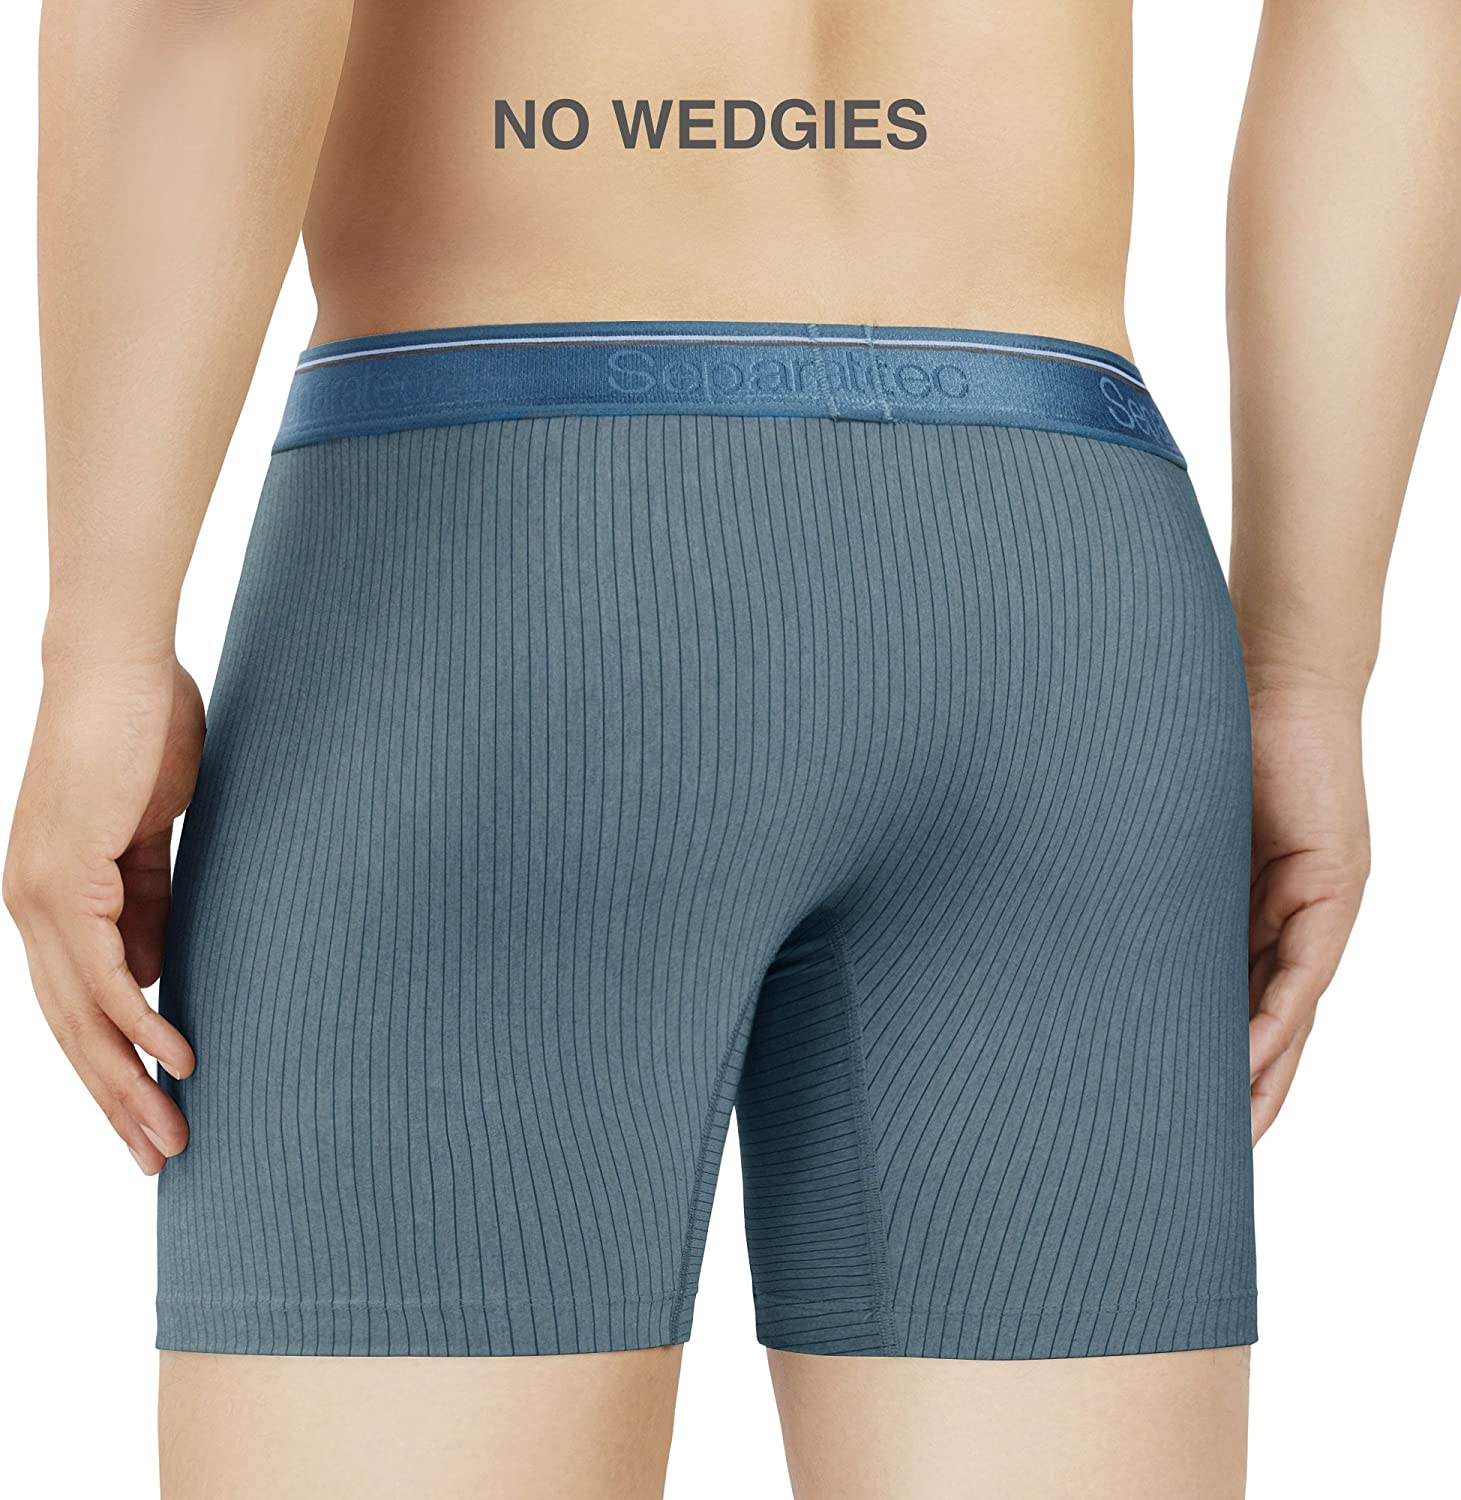 Separatec Men/'s 3 Pack Fast Dry Lightweight Striped Pouches Boxer Briefs